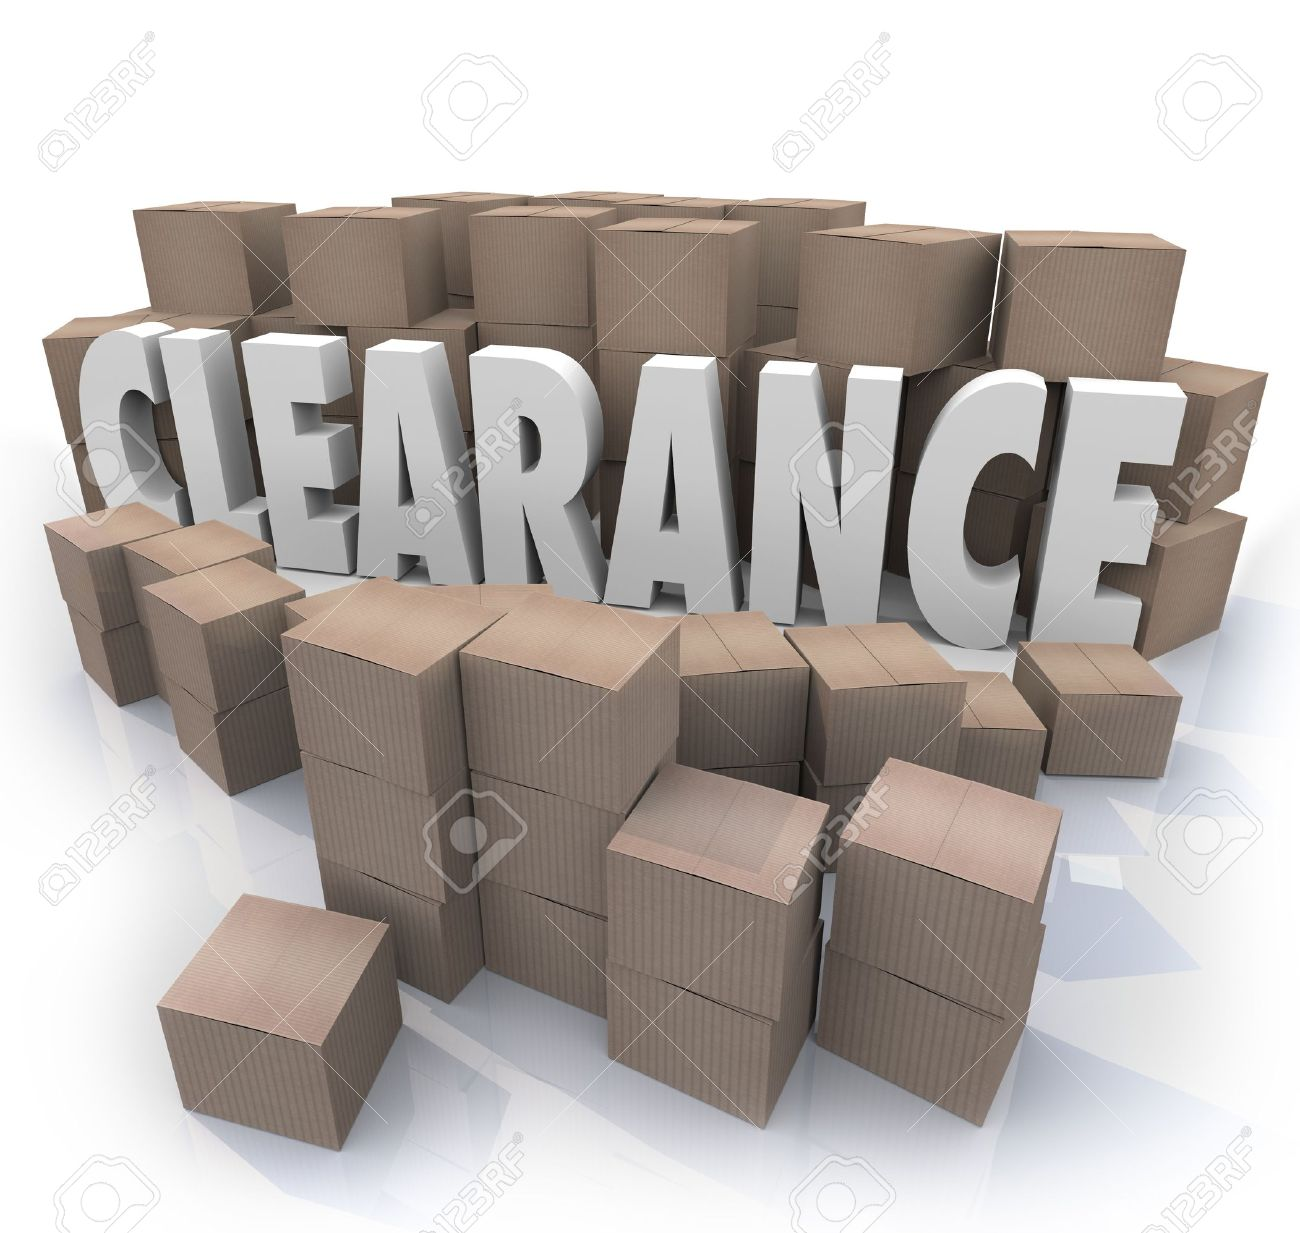 The word Clearance surrounded by cardboard boxes and packages in a storeroom or stockroom, an overstock supply of products on sale to be cleared out Stock Photo - 18781428